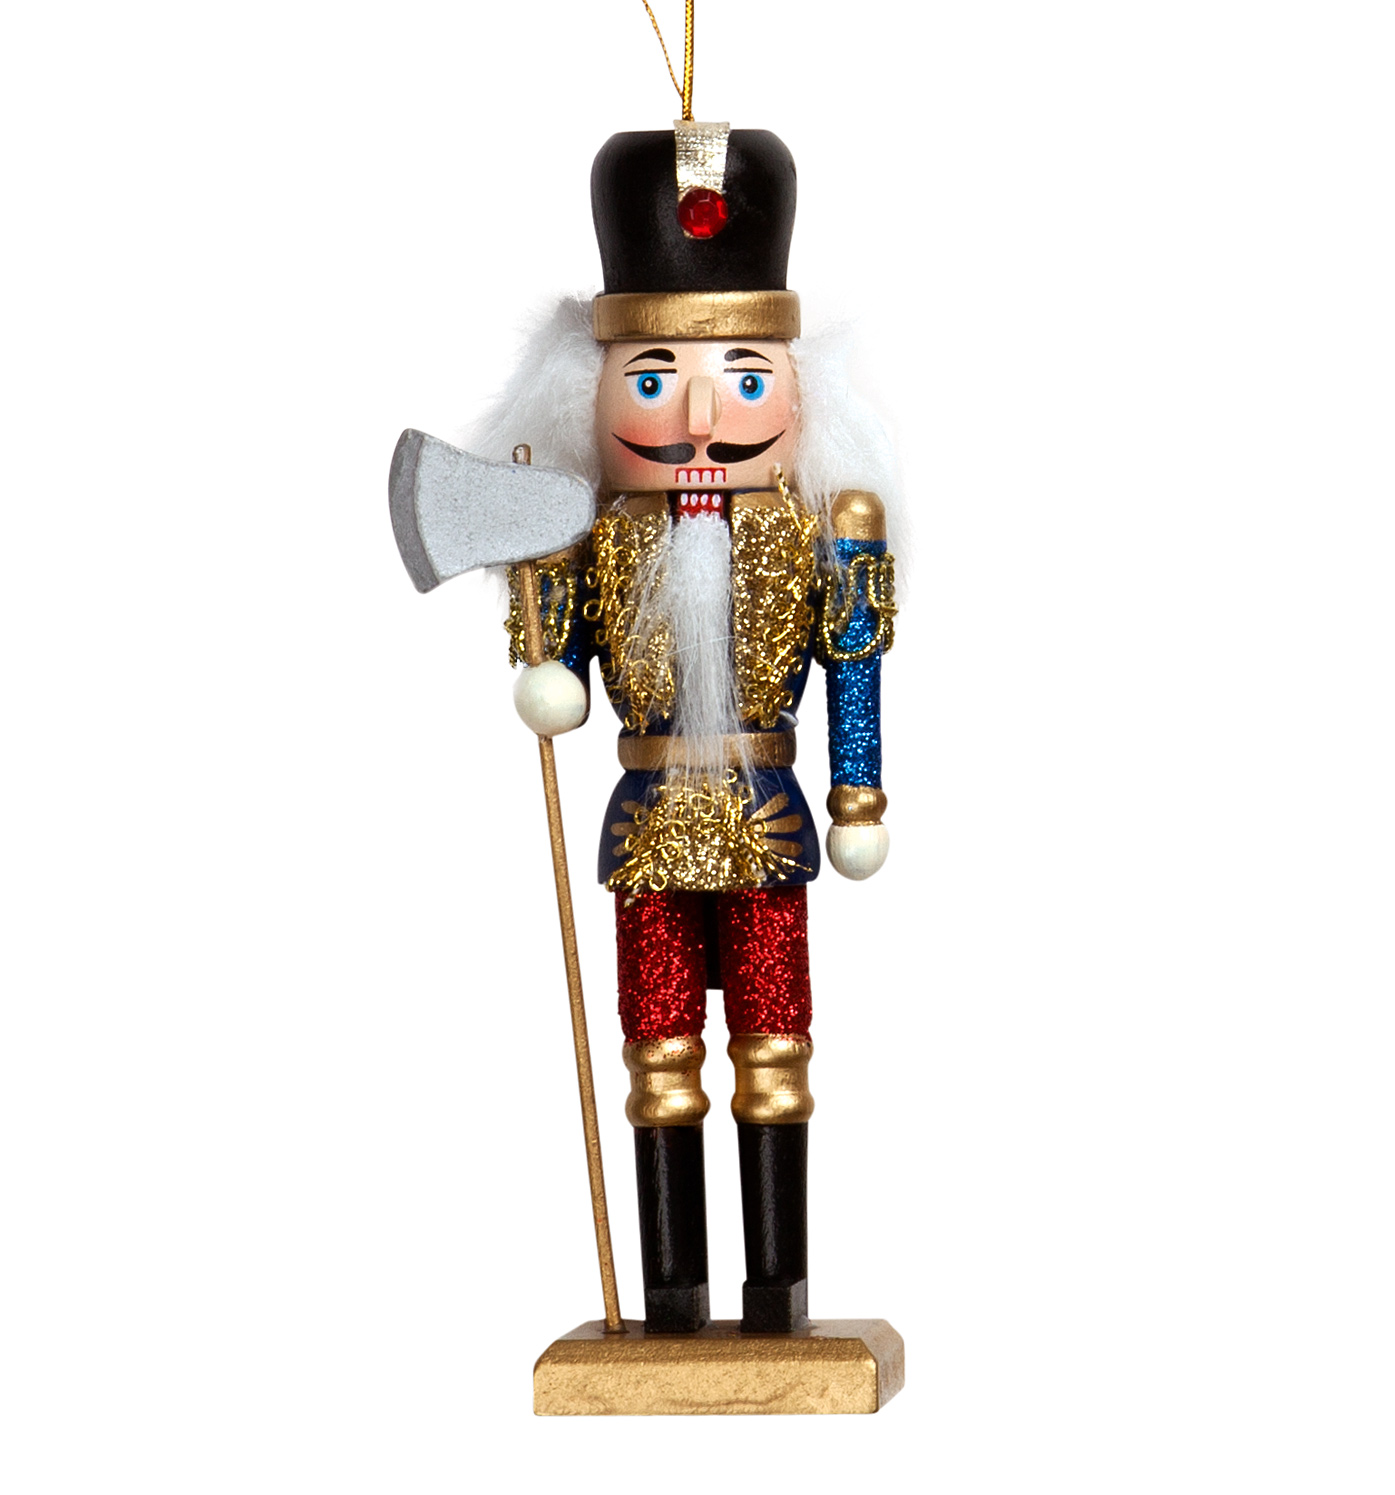 6 Foot Nutcracker Lookup BeforeBuying